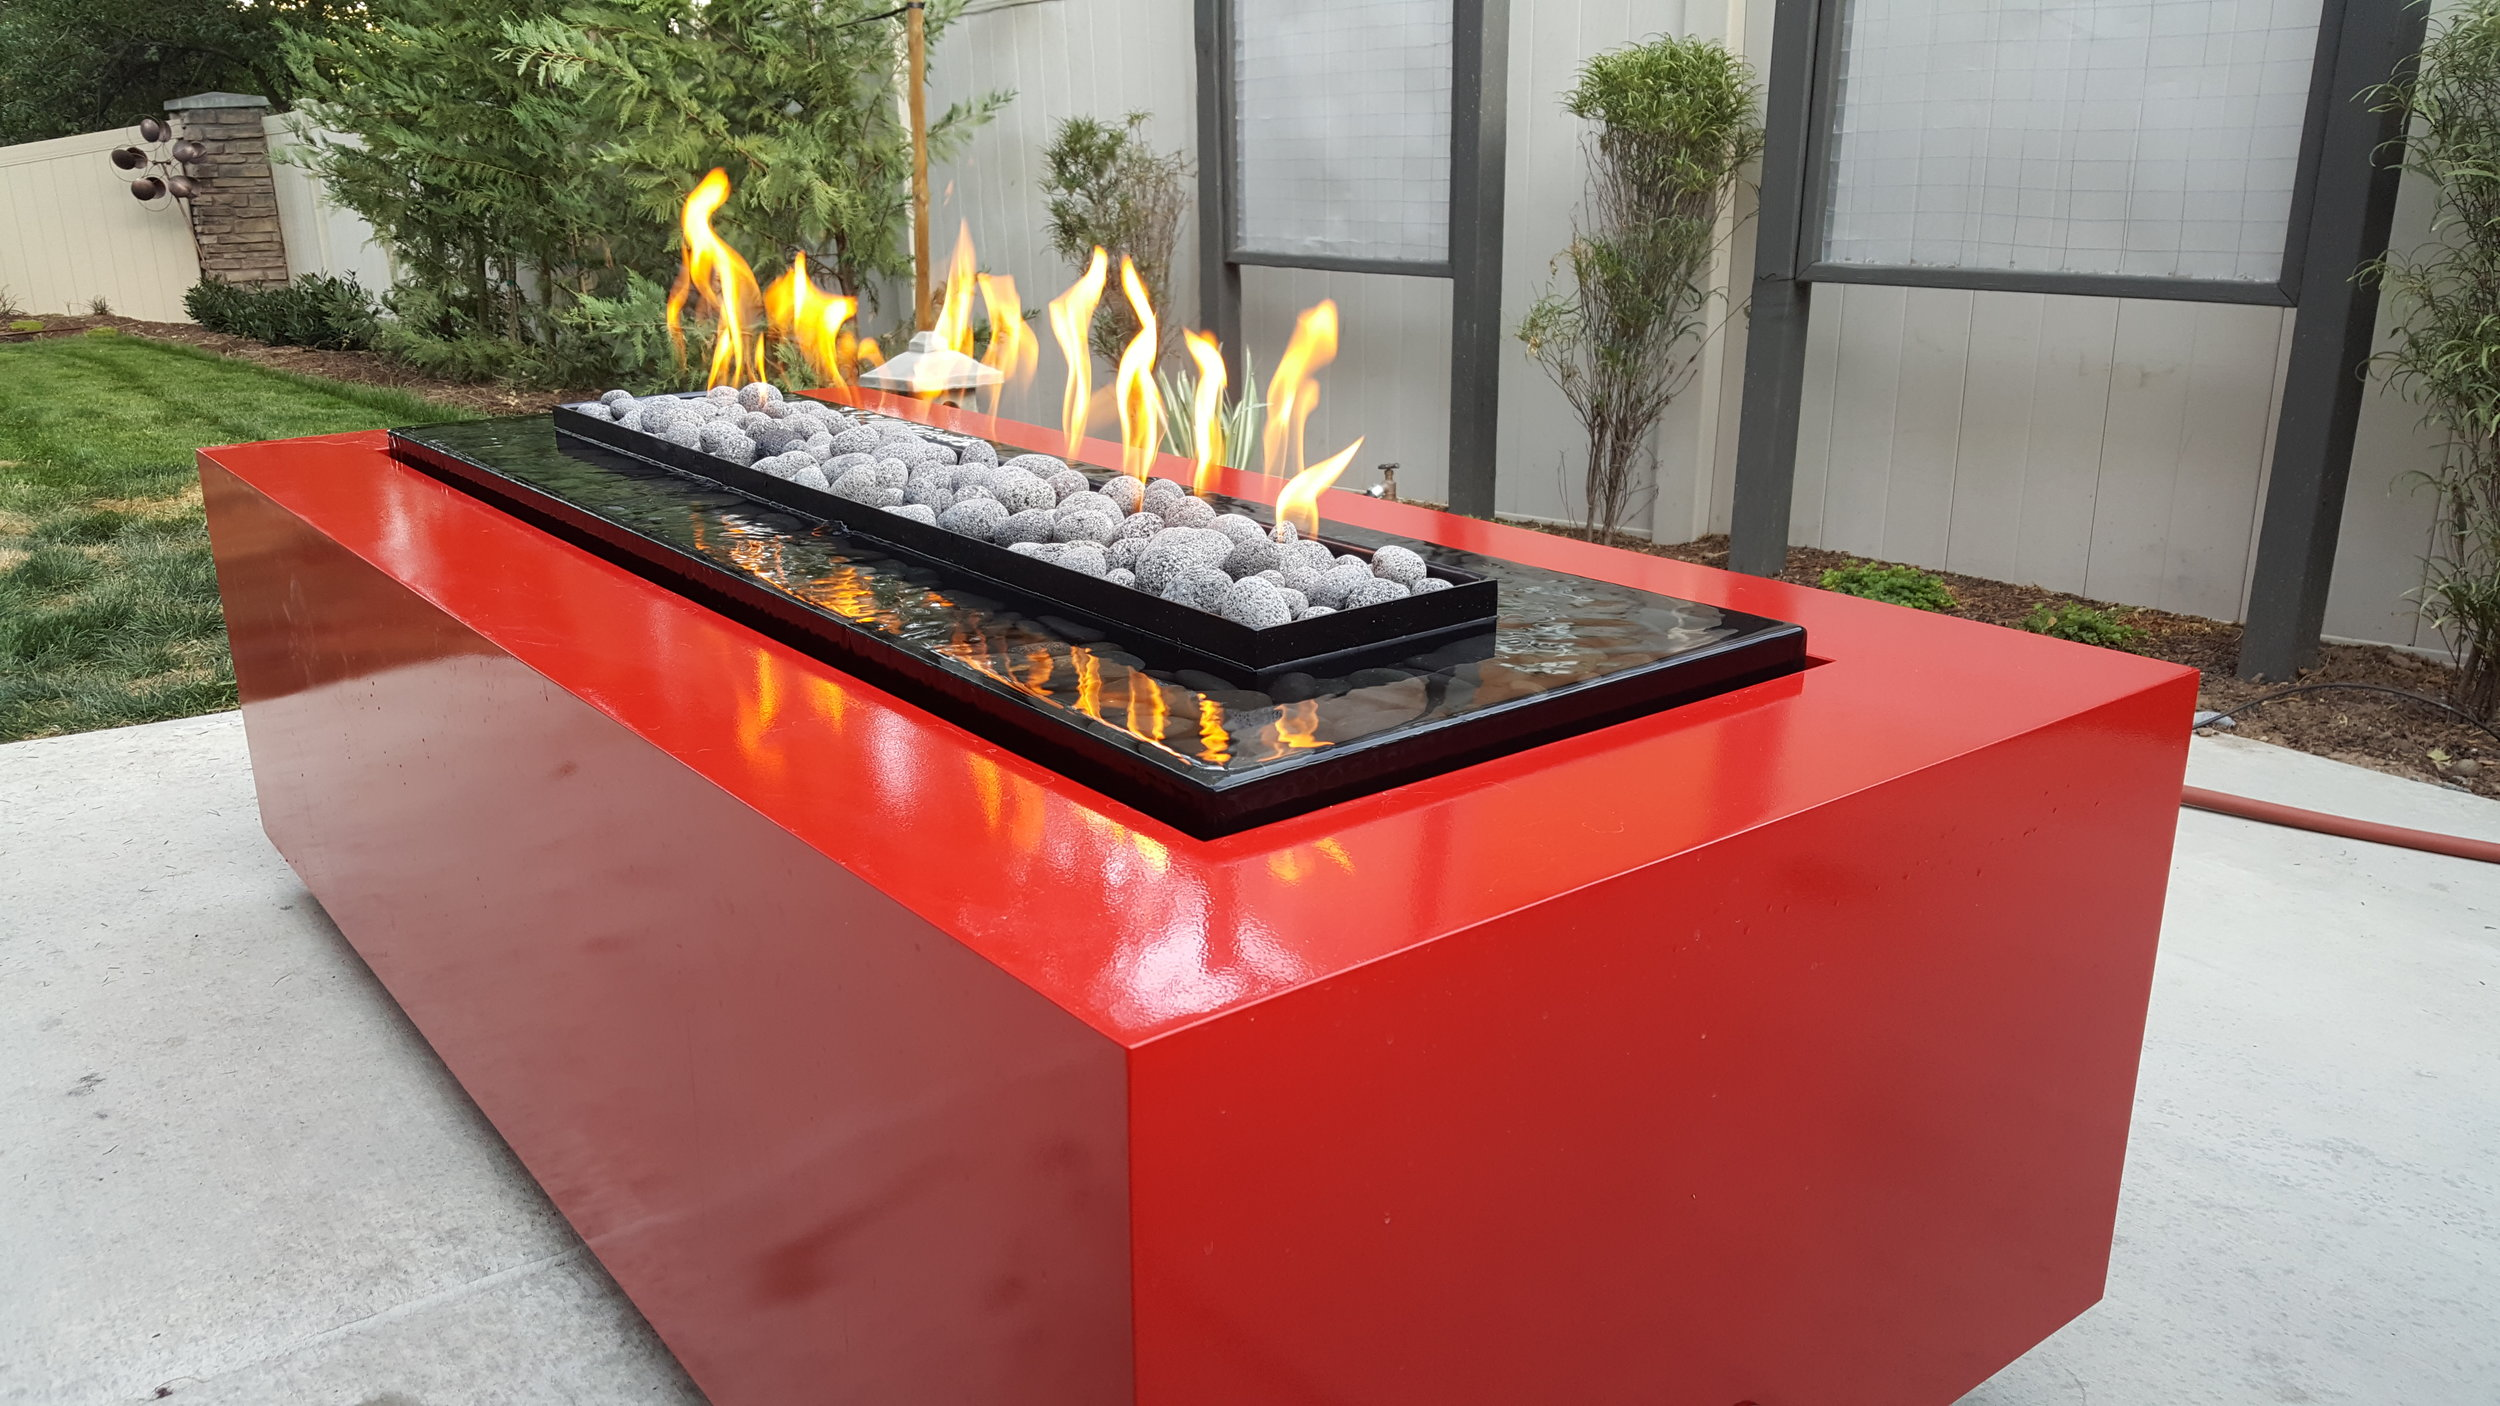 Fire table and water feature combo.